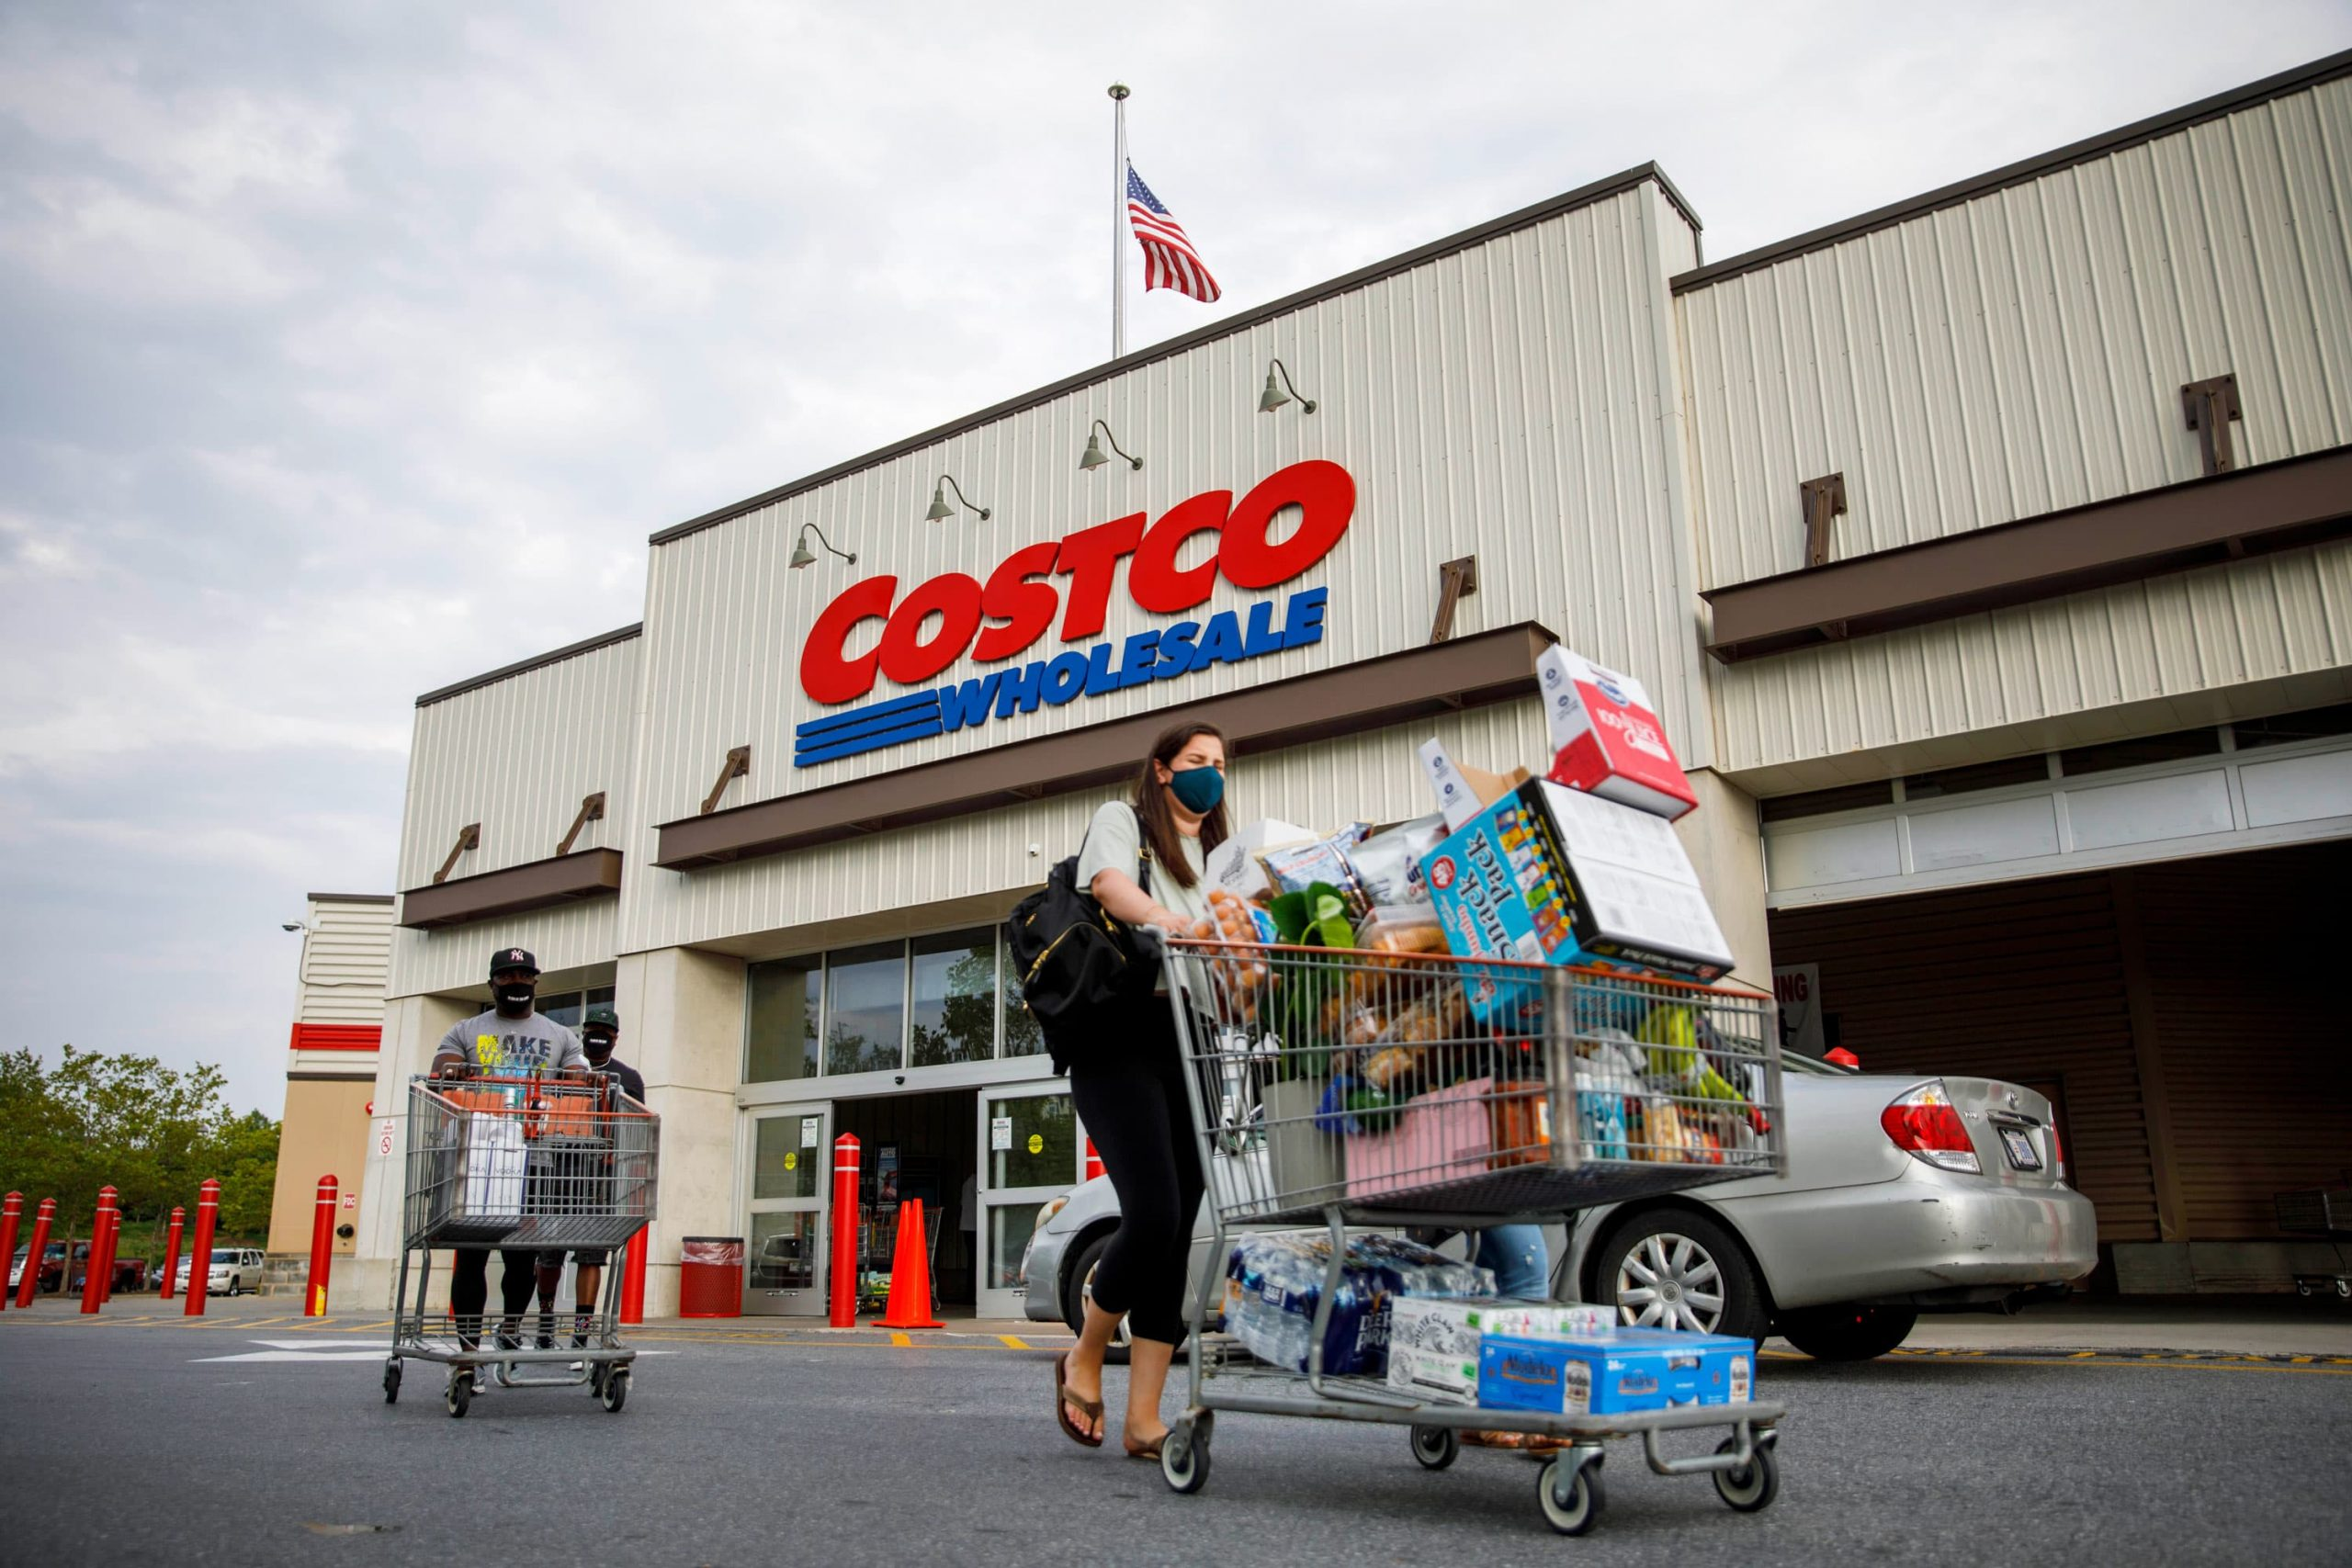 costco-ceo-says-brick-and-mortar-stays-key-whilst-e-commerce-grows